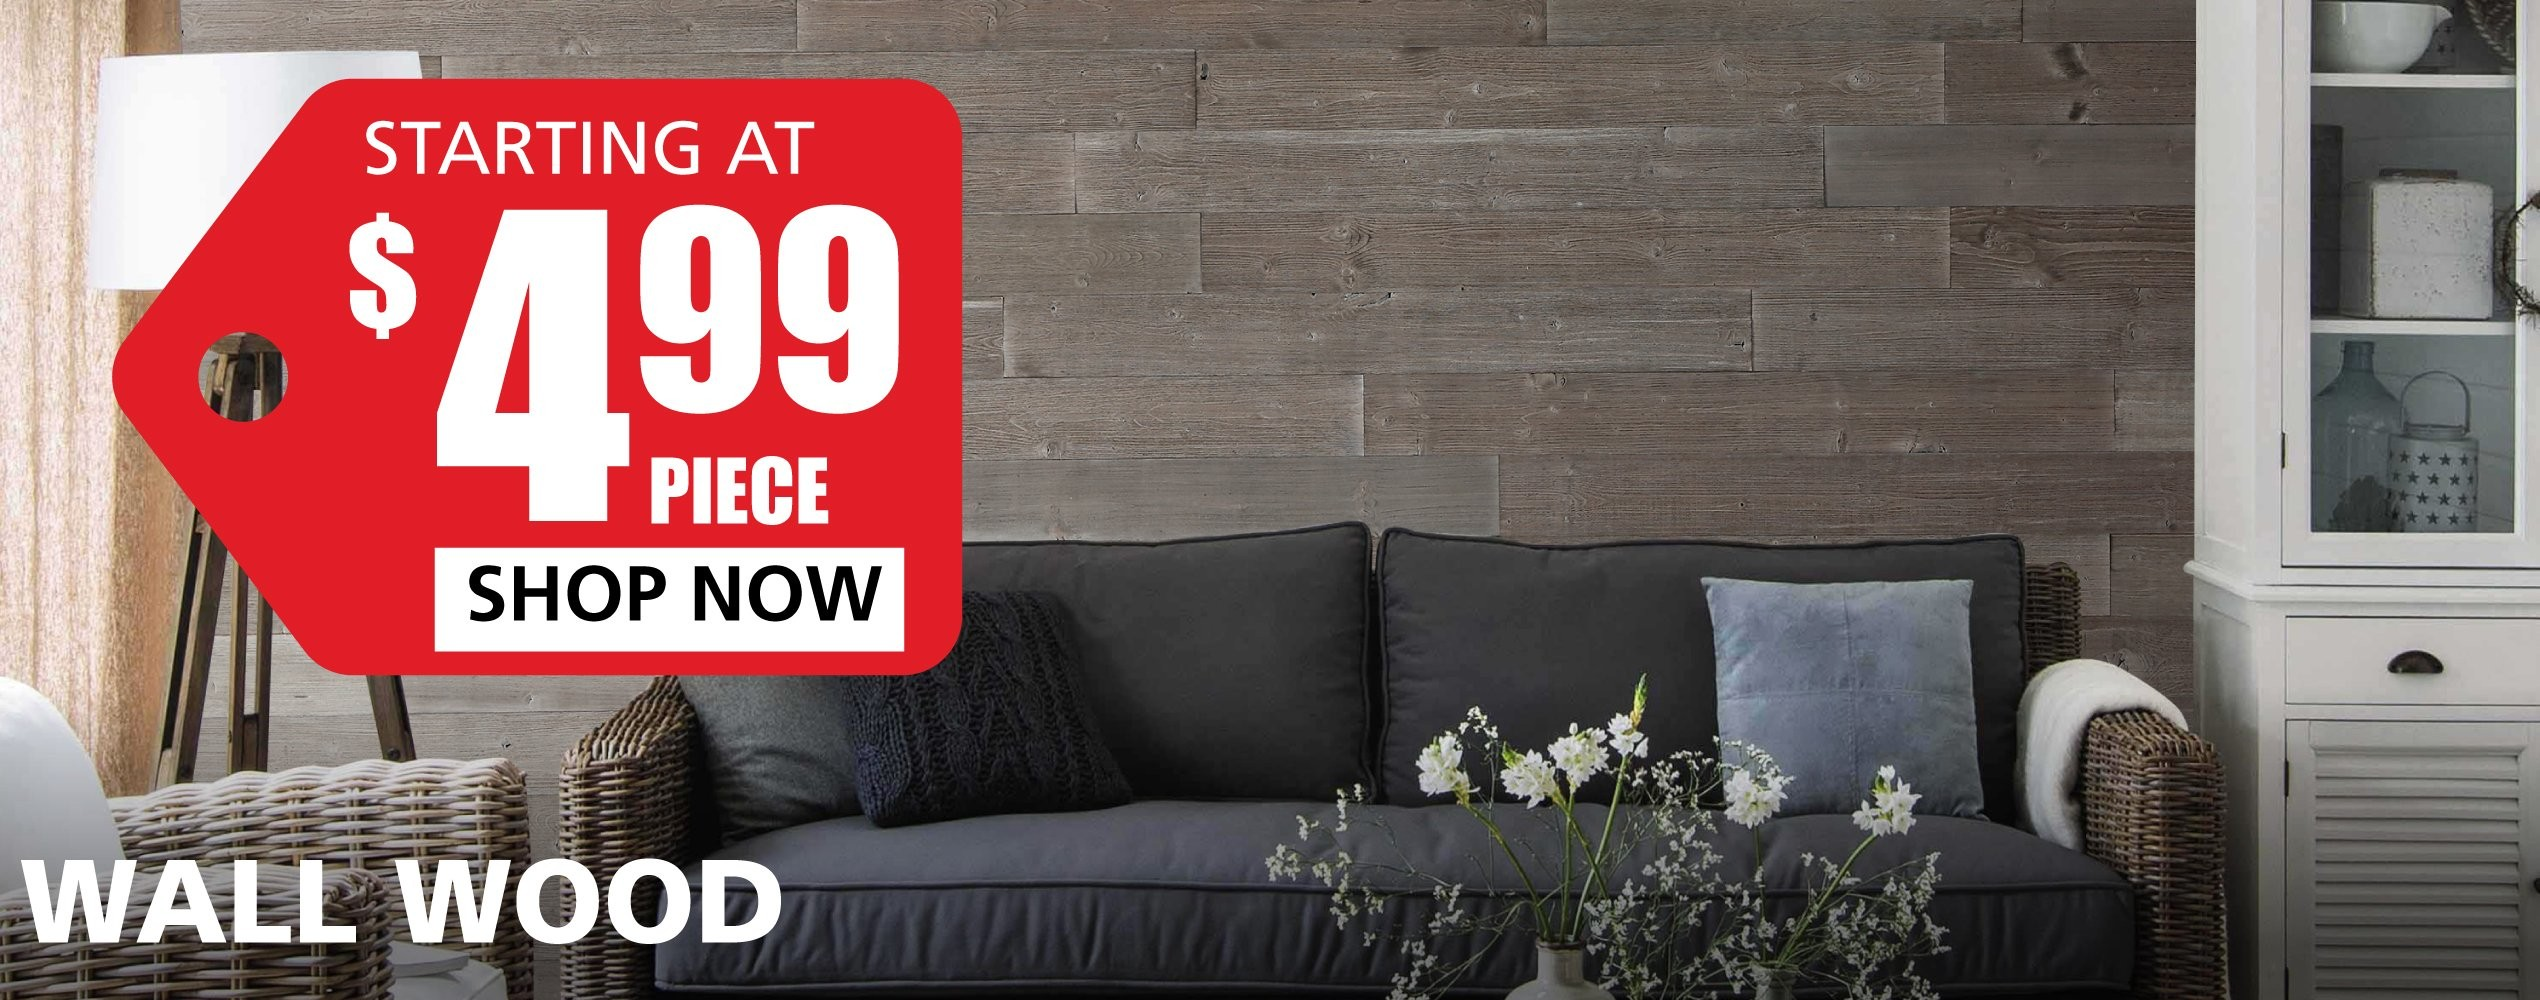 Wall Wood starting at $4.99 per square foot